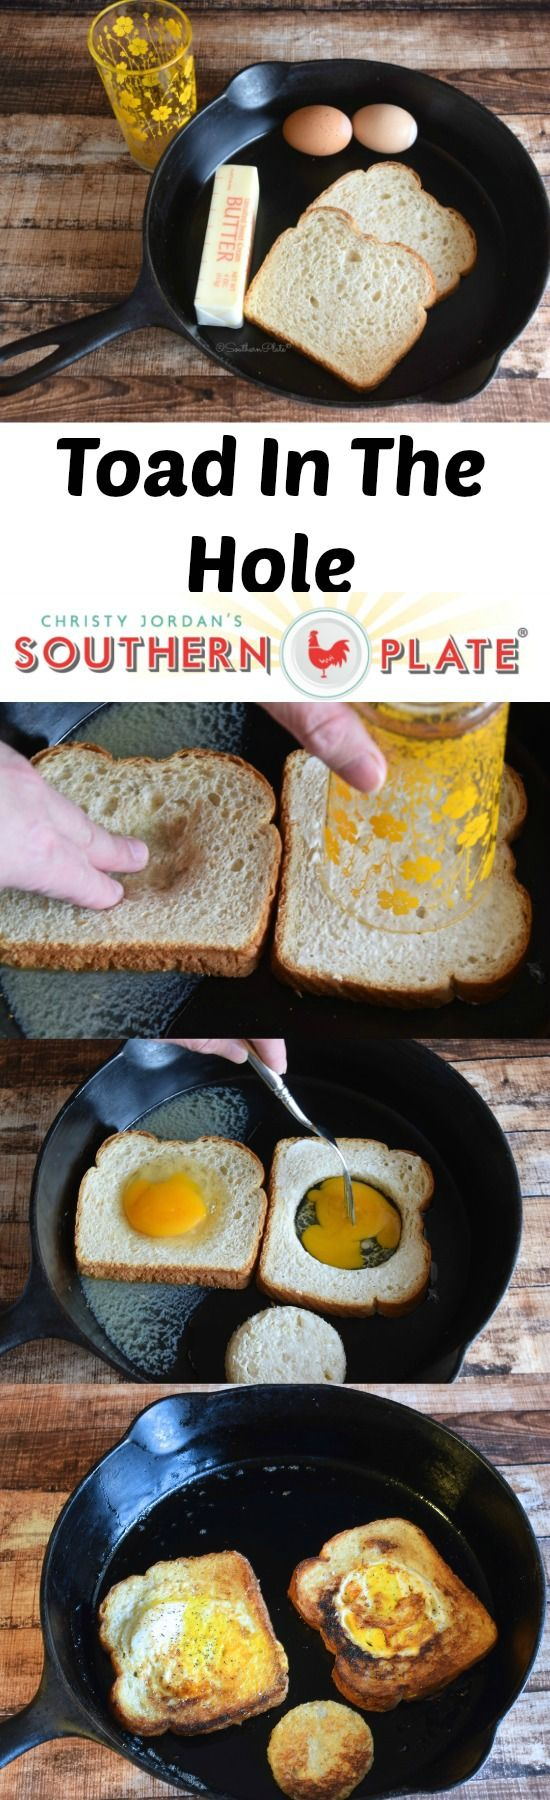 Toad in the Hole: 2 ways. This old fashioned meal in one has been a ...